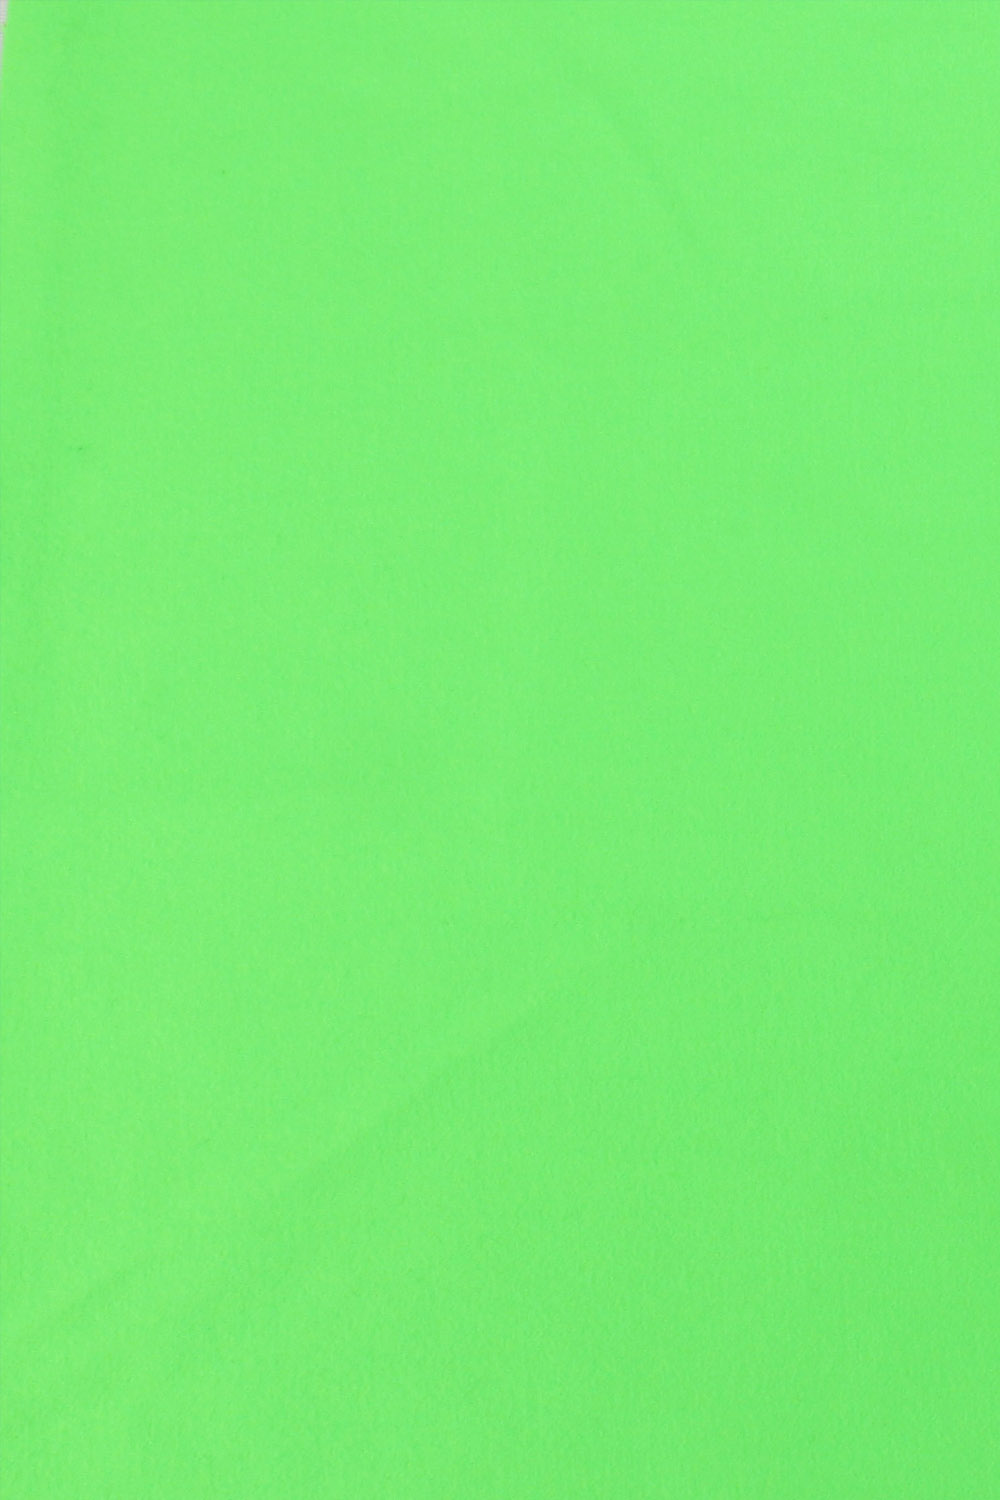 HB GRIP ROMANIA, Lighting accessories, Chromakey Digital Green